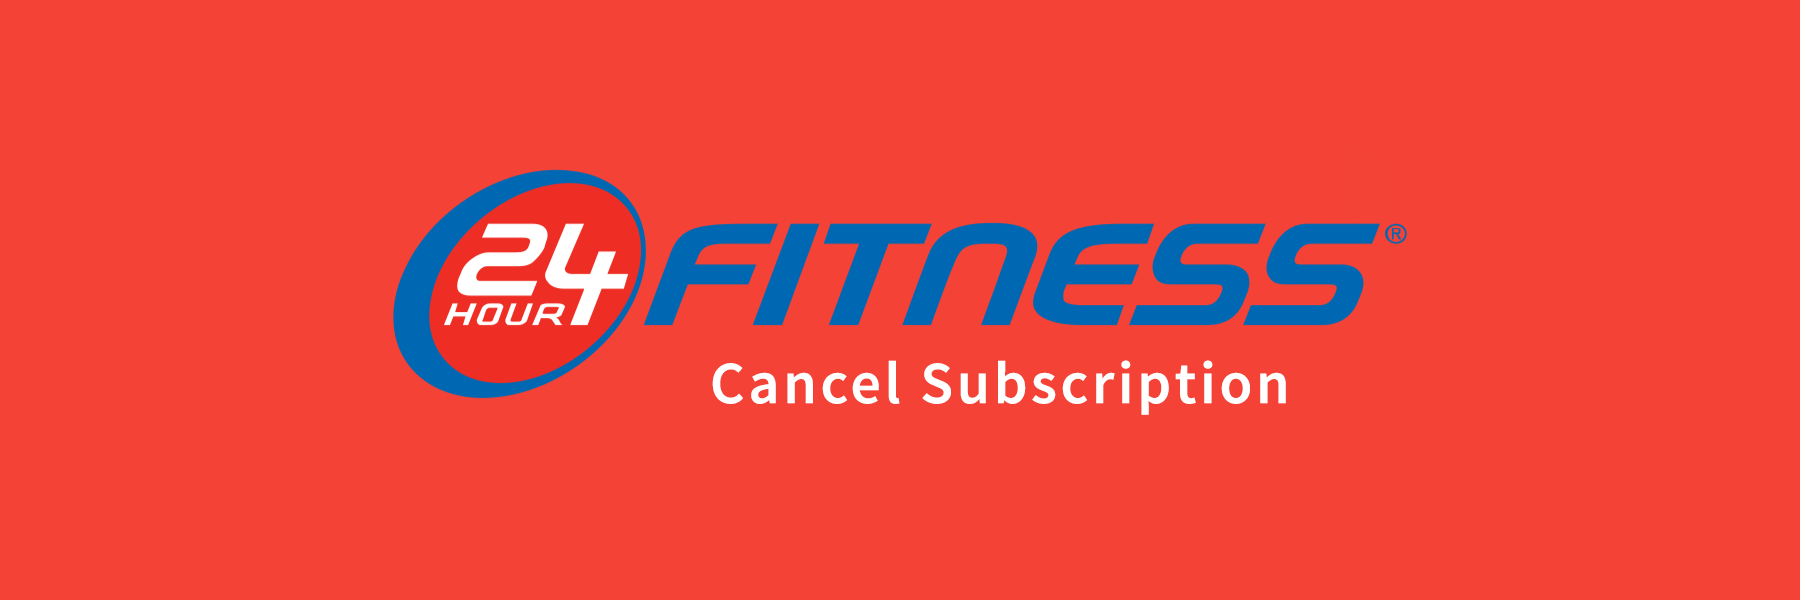 How To Cancel The 24 Hour Fitness Membership